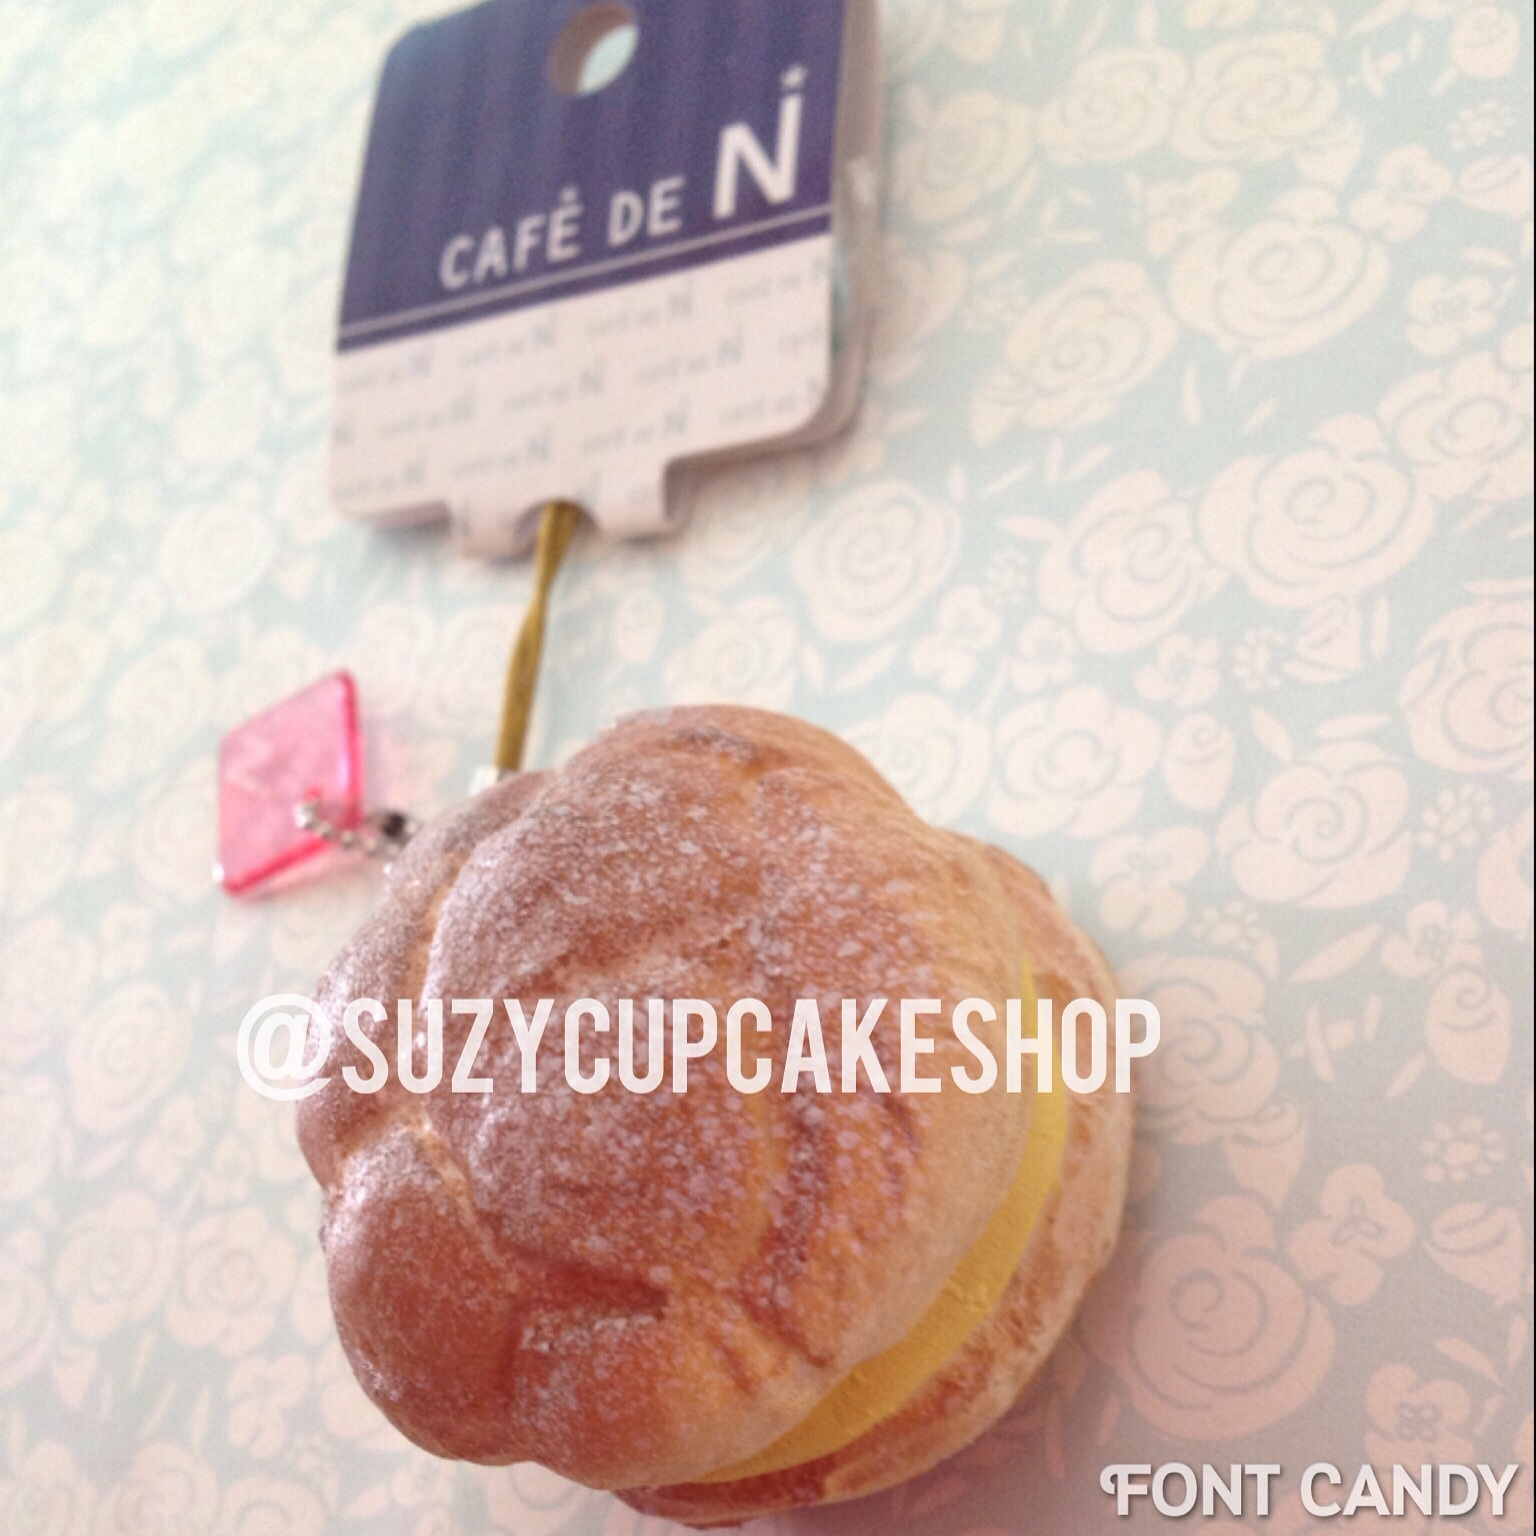 Super rare original cafe de n Creampuff squishy ? SuzyCupcake ? Online Store Powered by Storenvy